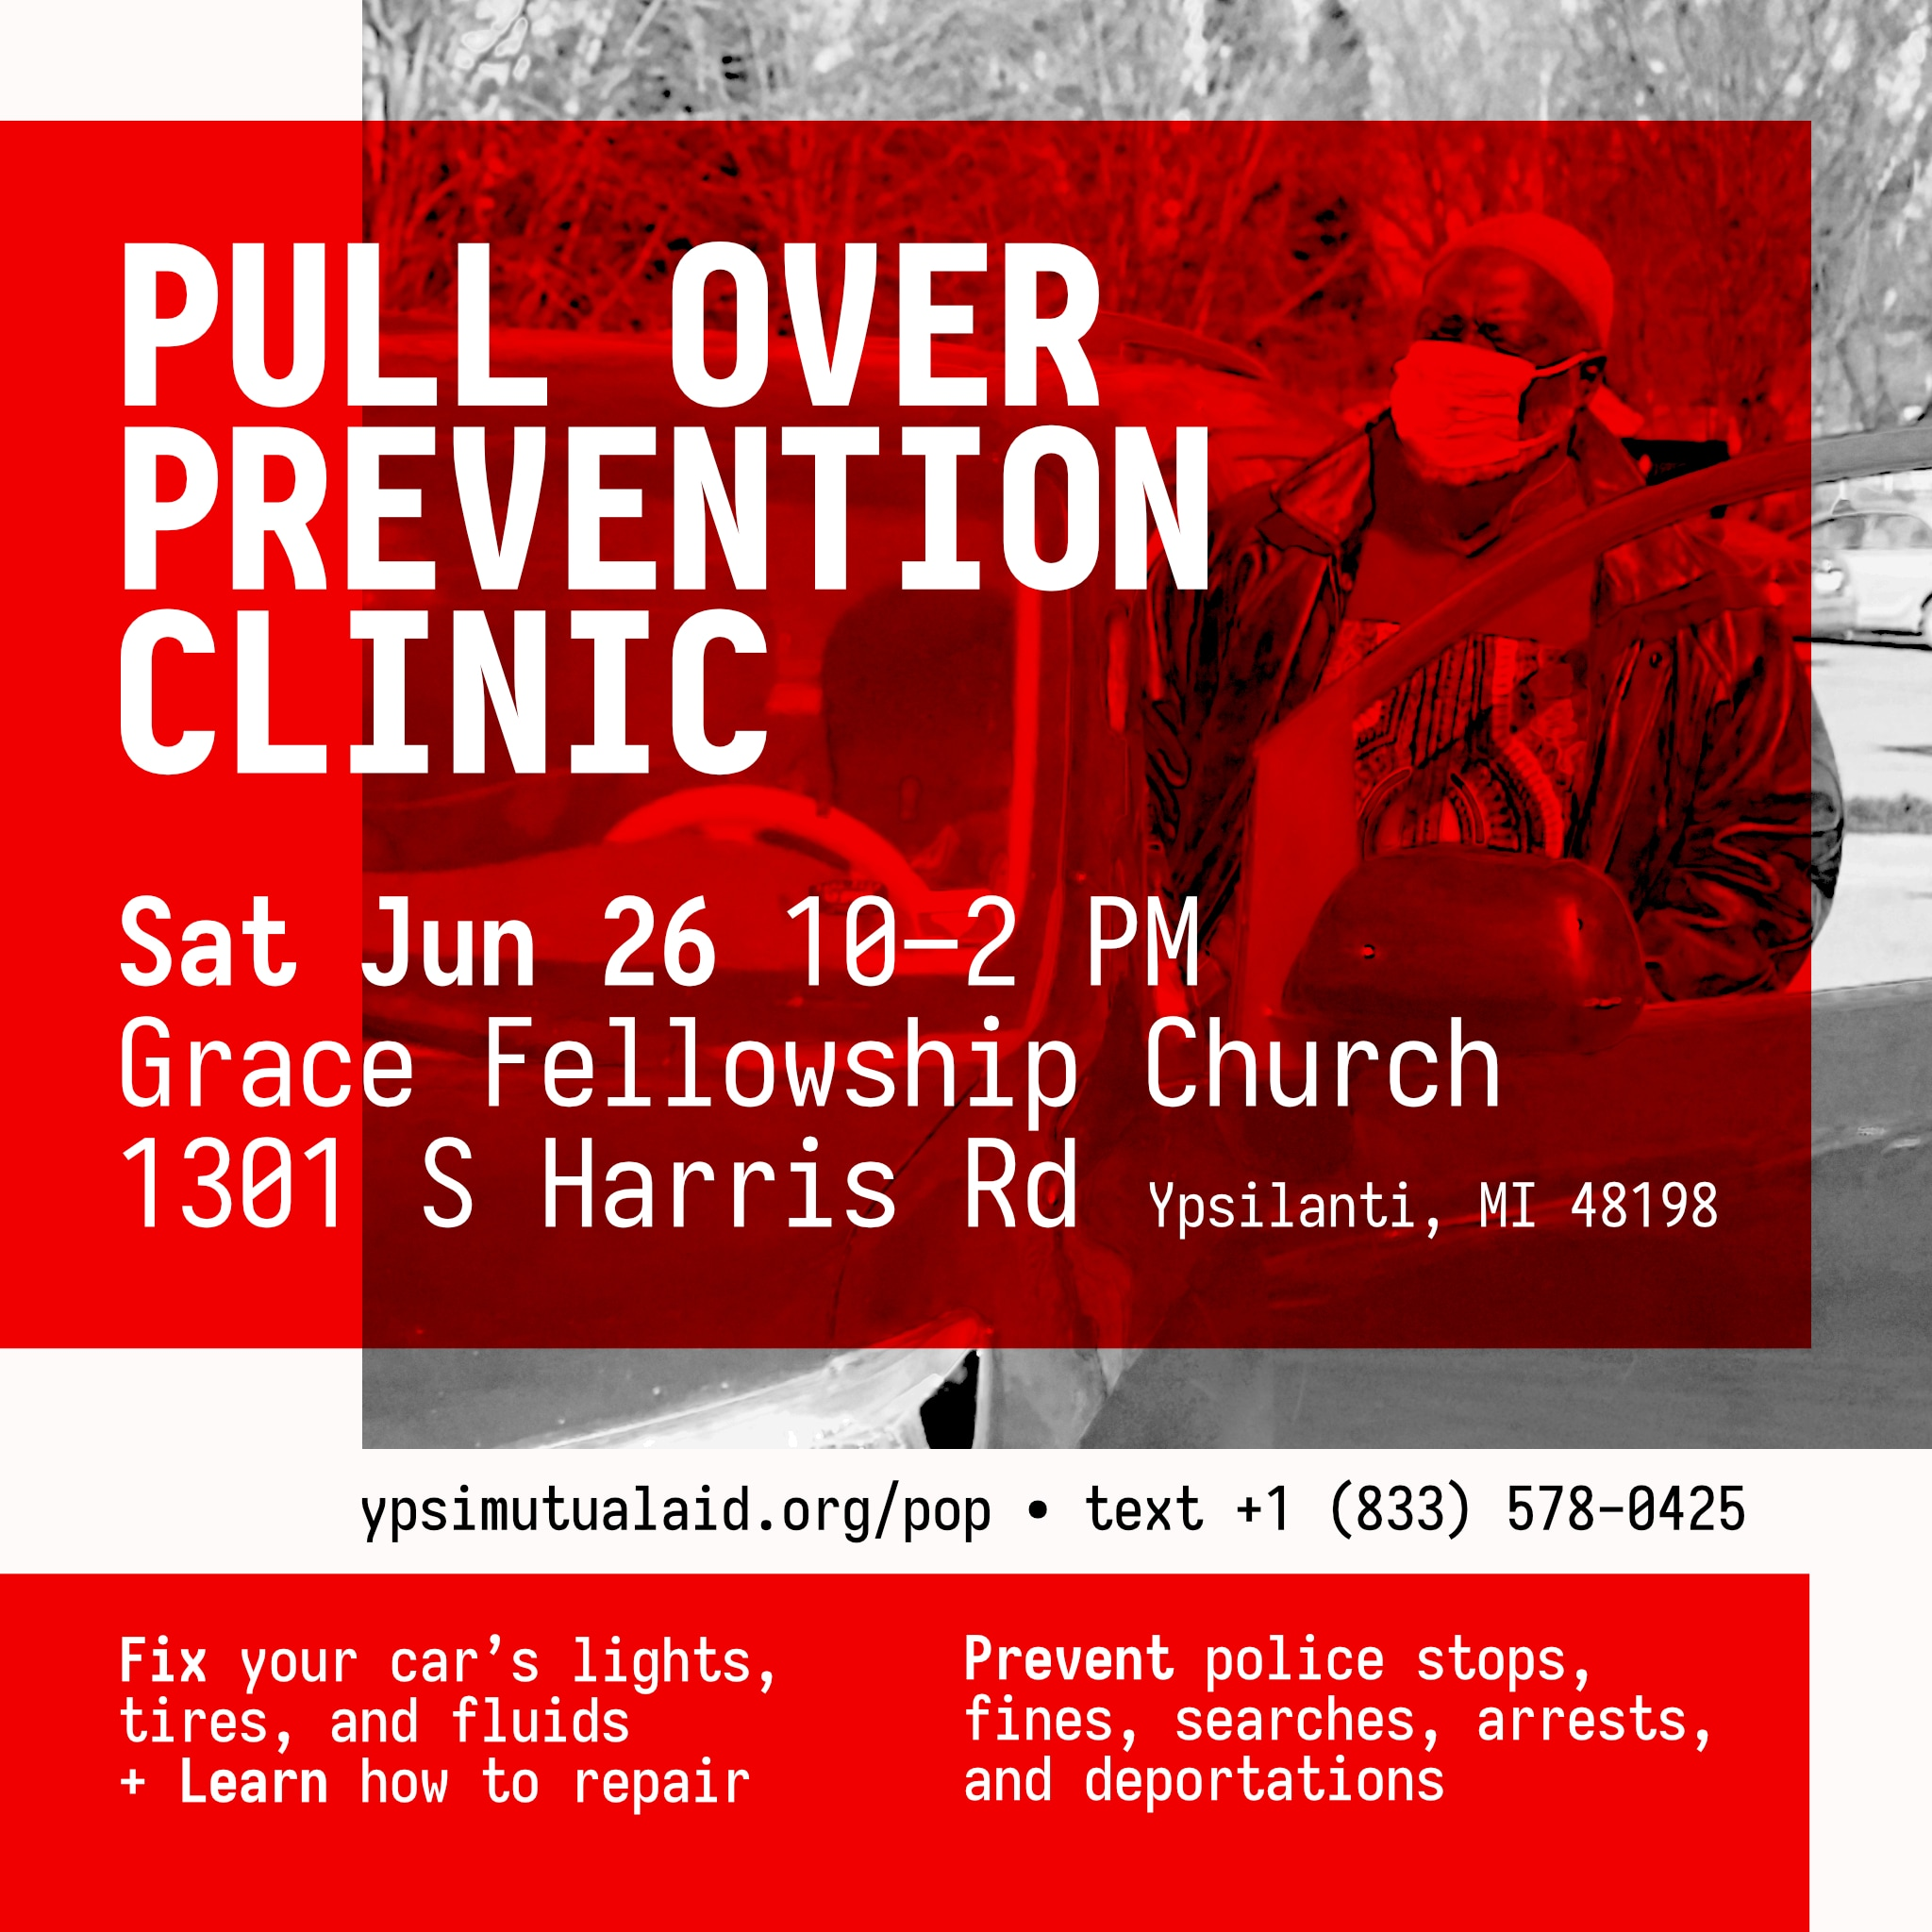 Shareable graphic for Pull Over Prevention Clinic, June 2021.